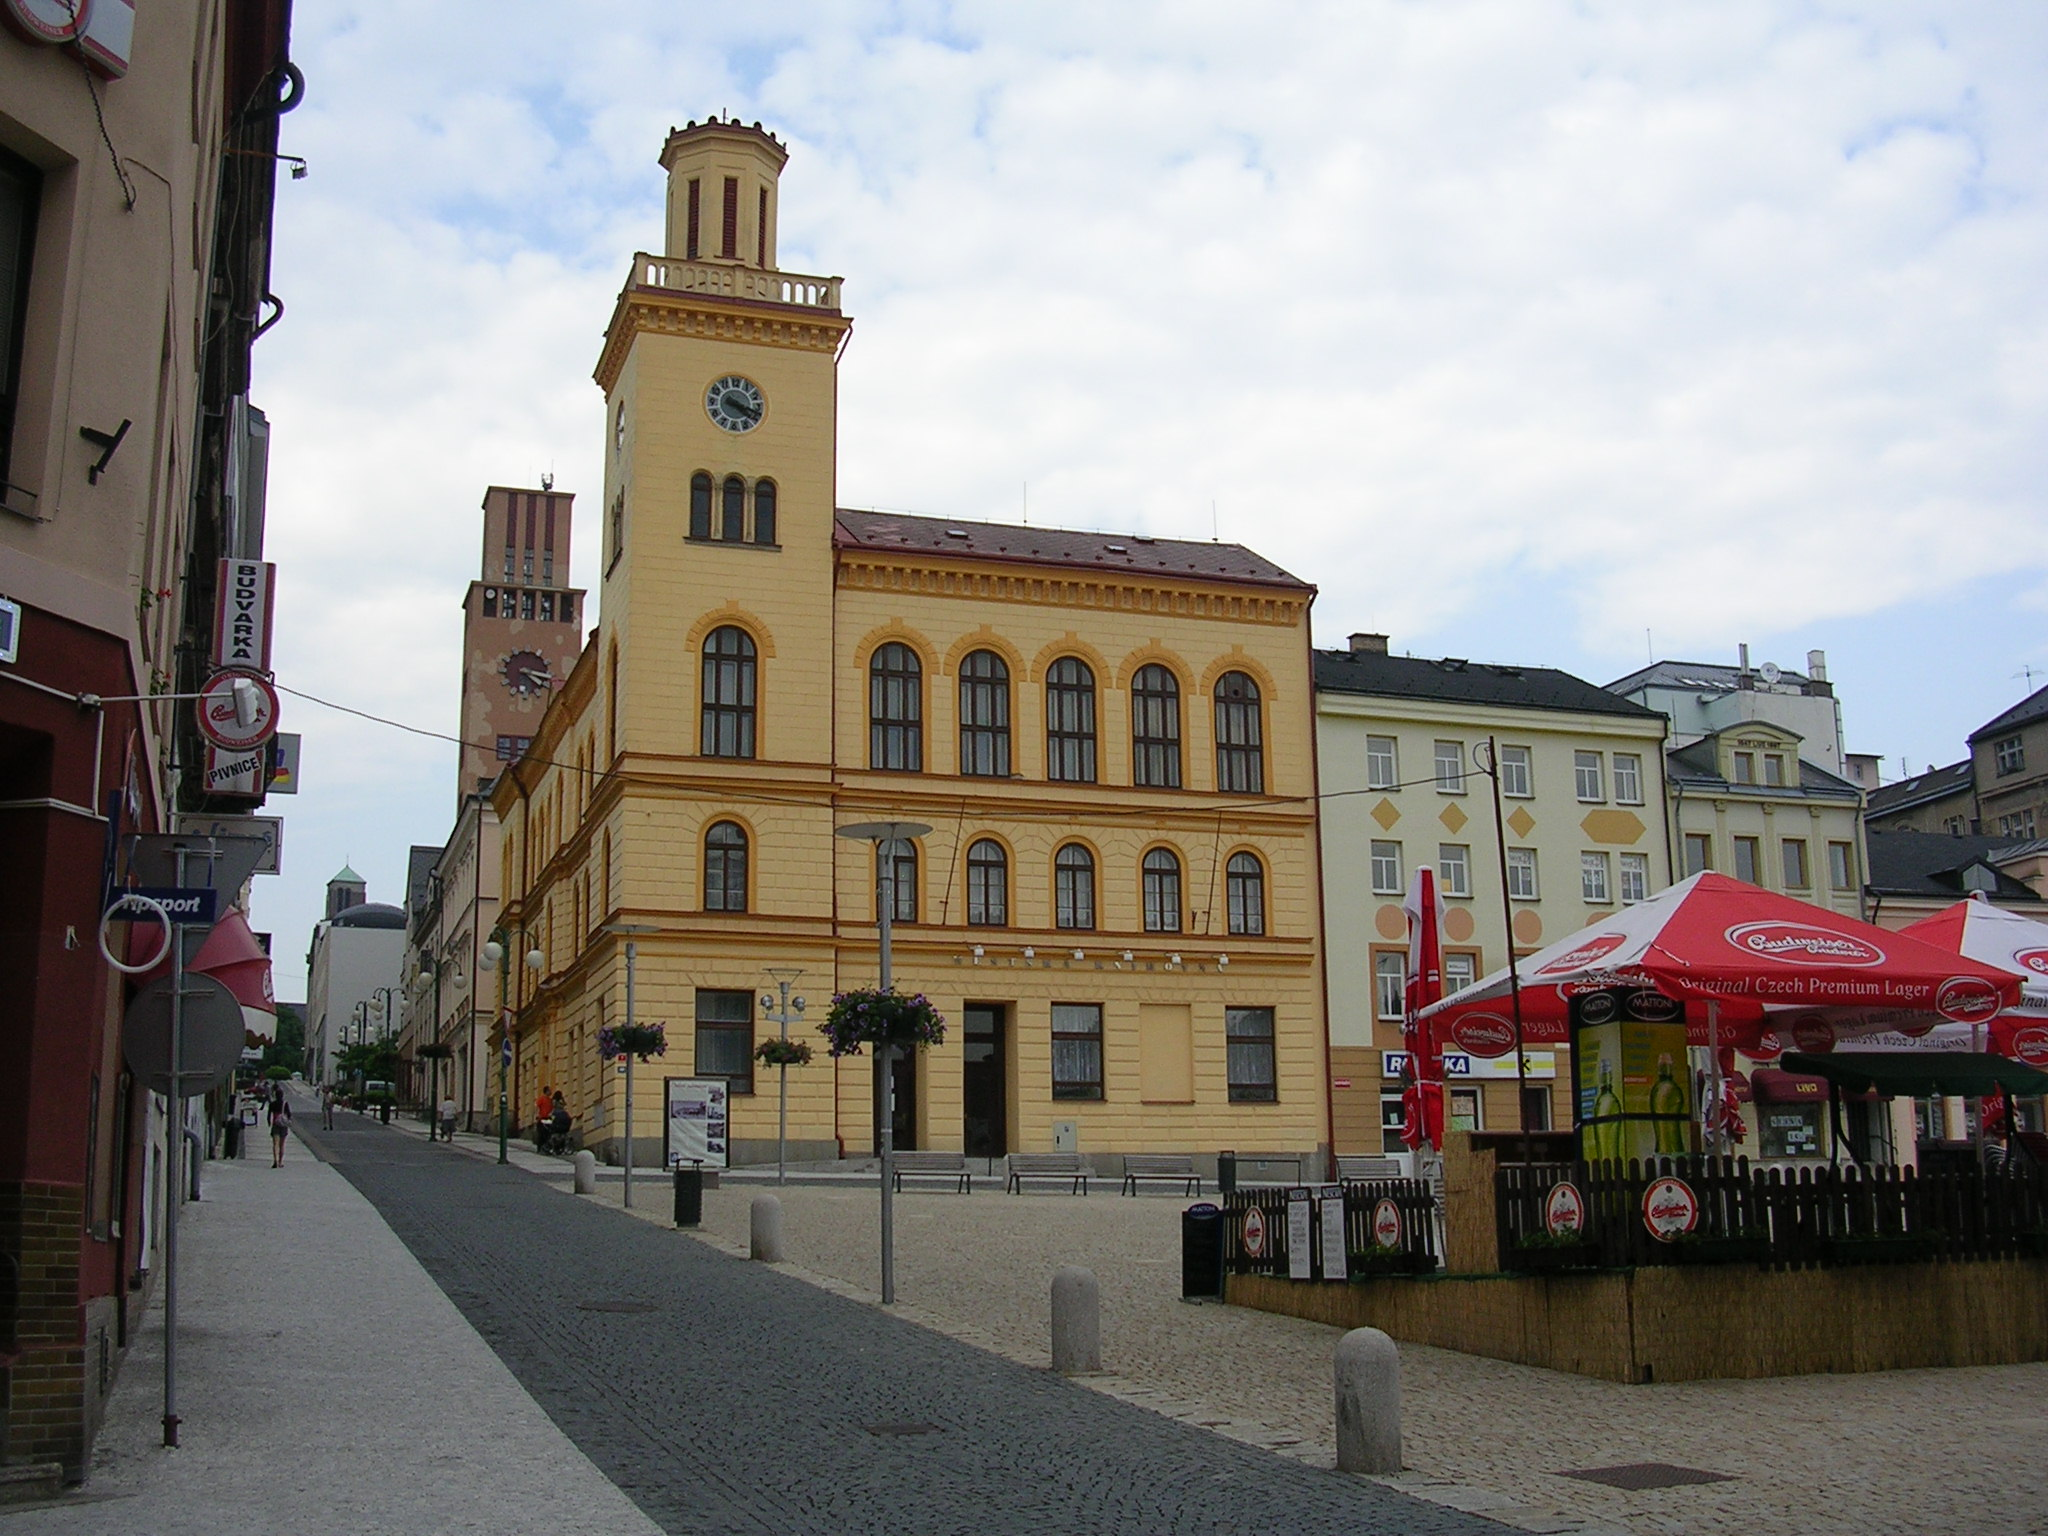 jablonec nad nisou dating site Chat online in jablonec nad nisou, czech republic with over 330m members on badoo, you will find someone in jablonec nad nisou make new friends in jablonec nad nisou at badoo today.